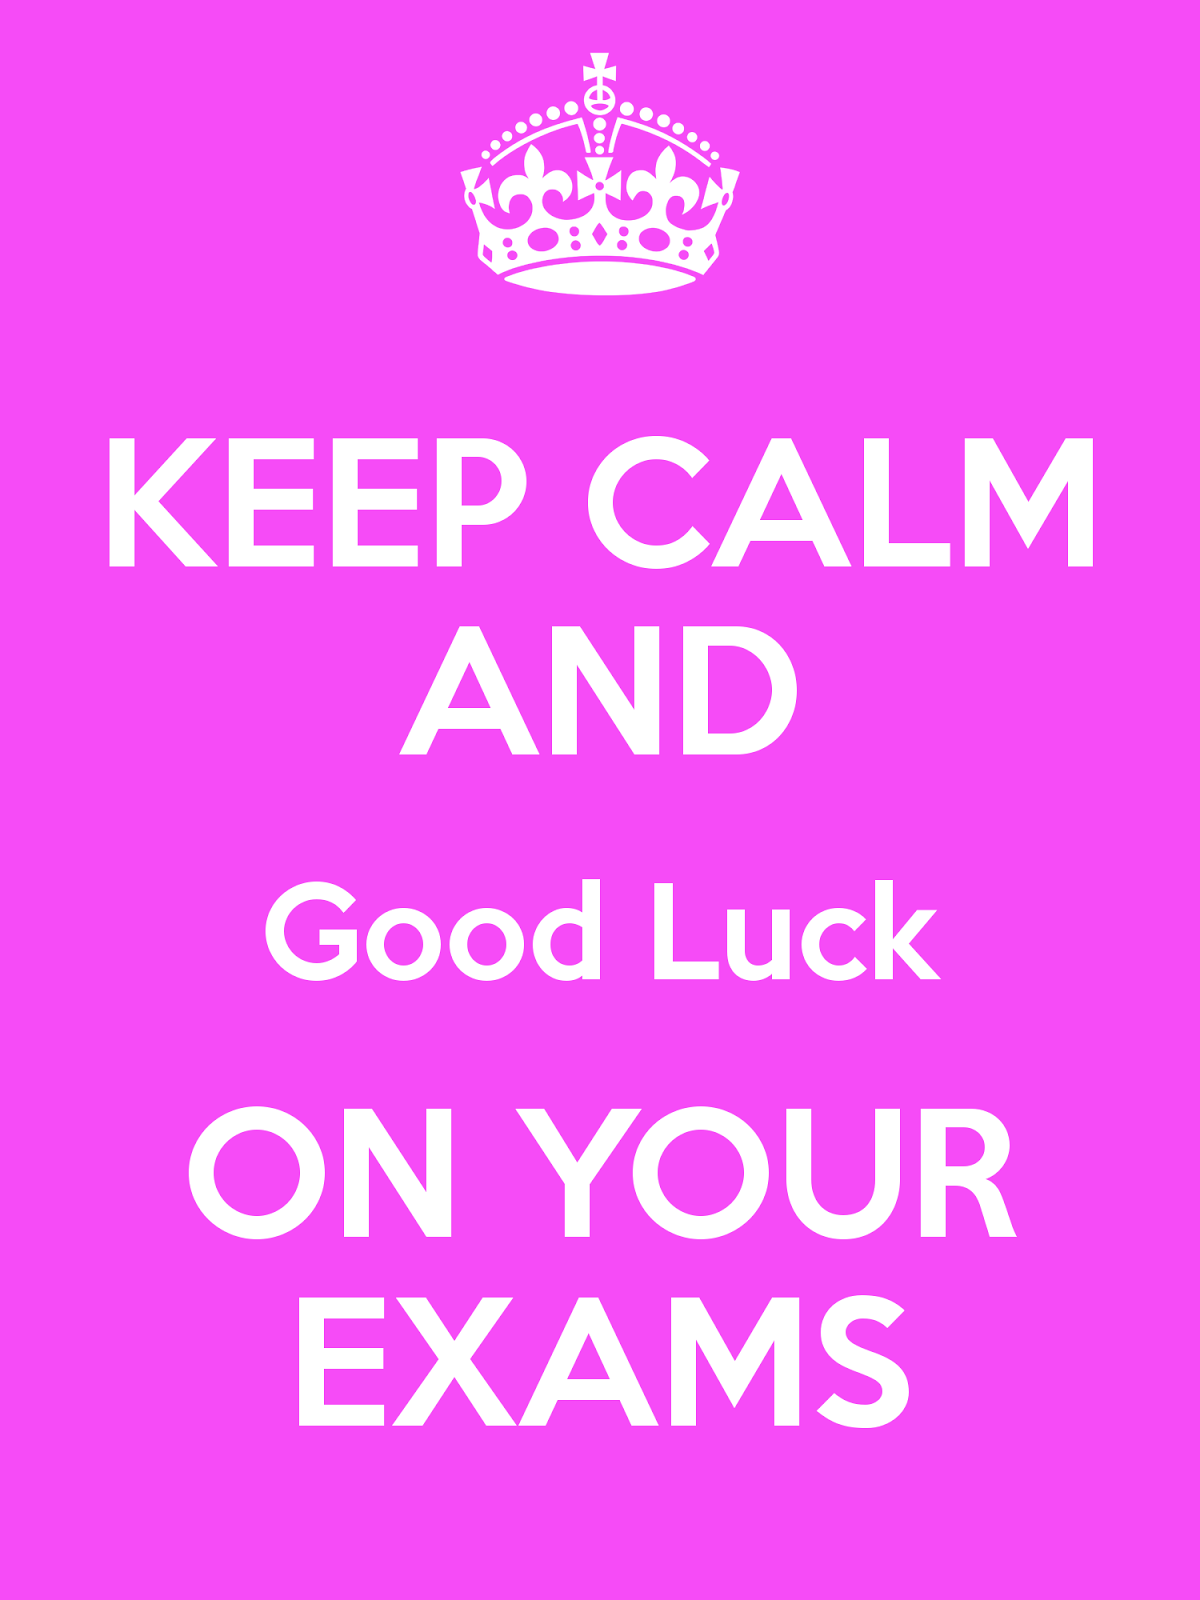 Awesome Keep Calm And Good Luck On Your Exams Image